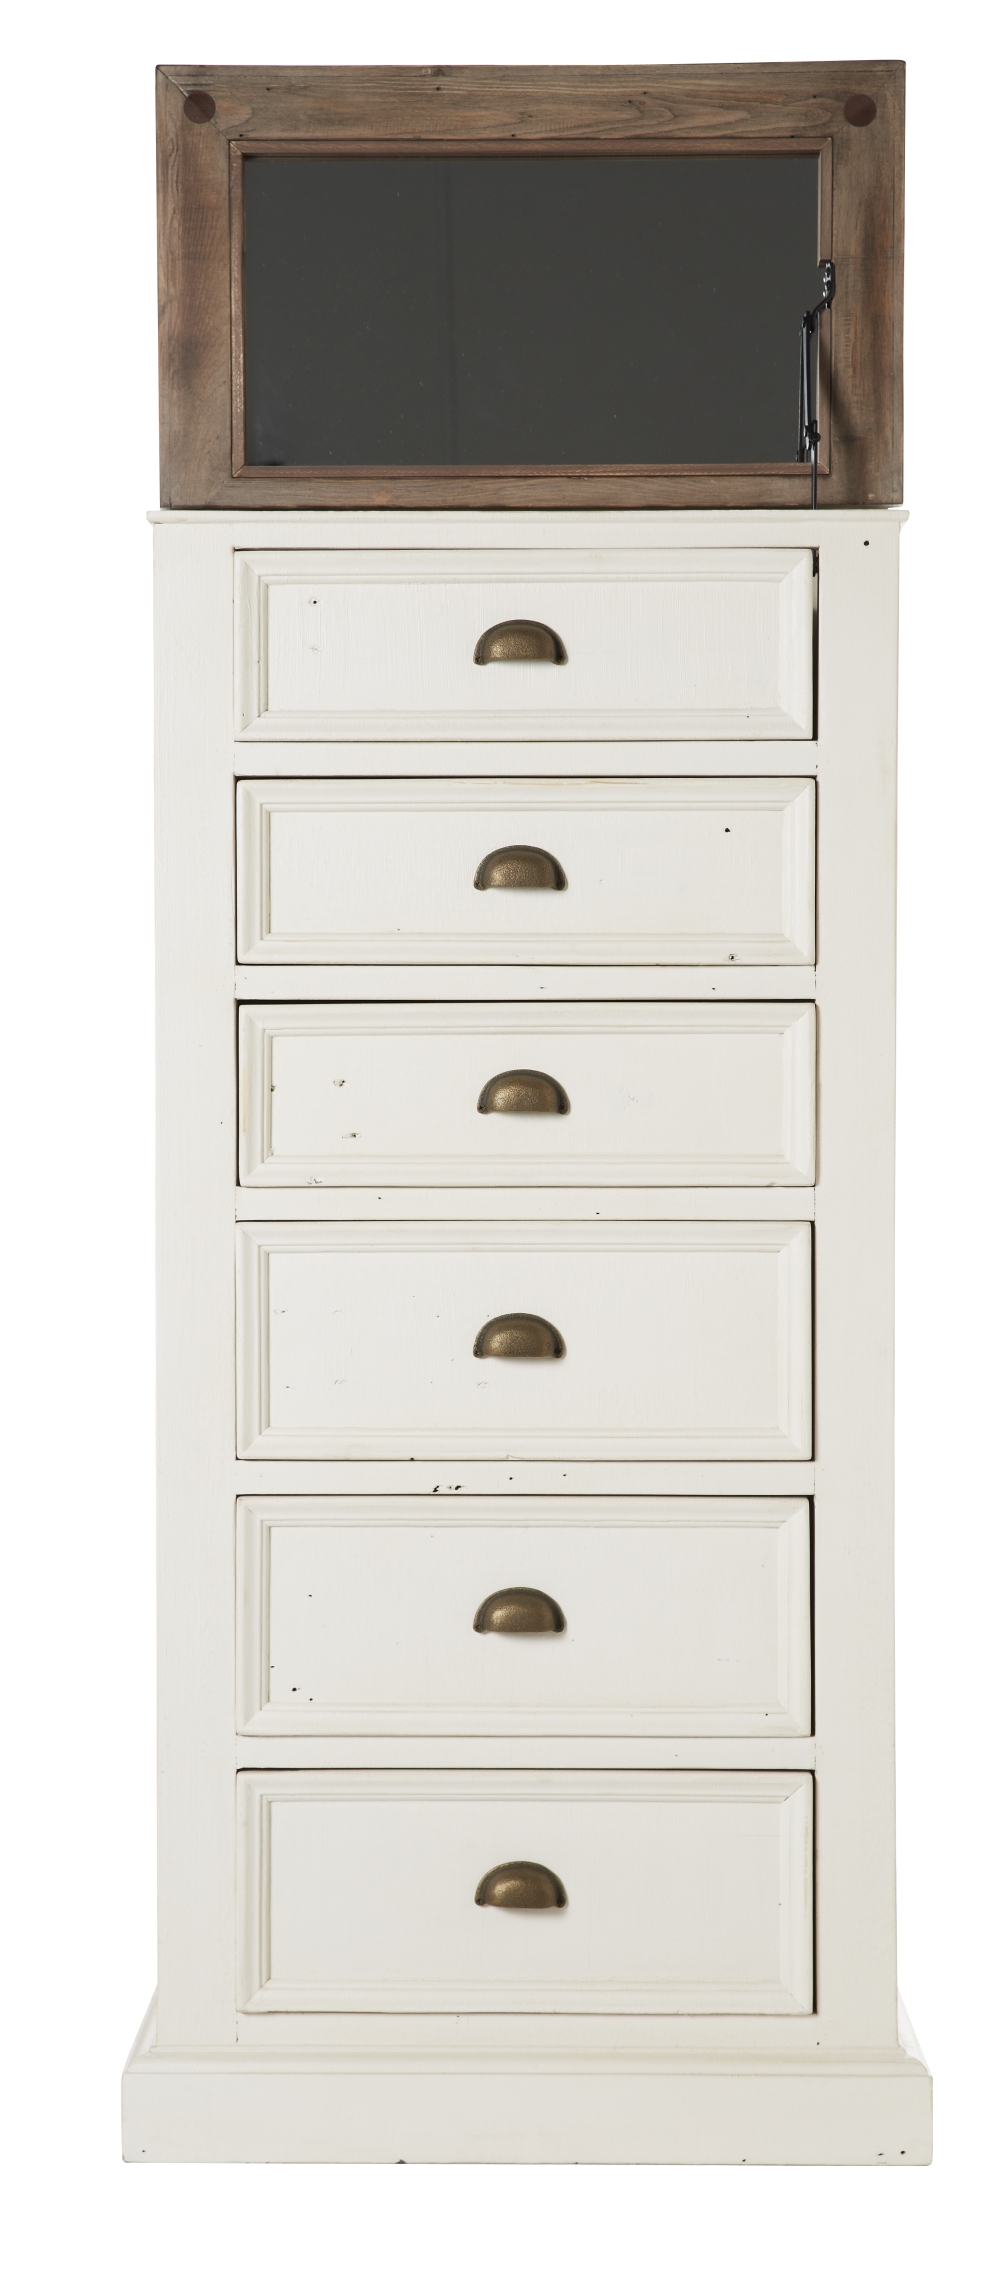 Cornwall Lingerie Chest (6 Drawer), Stucco White | Tuggl